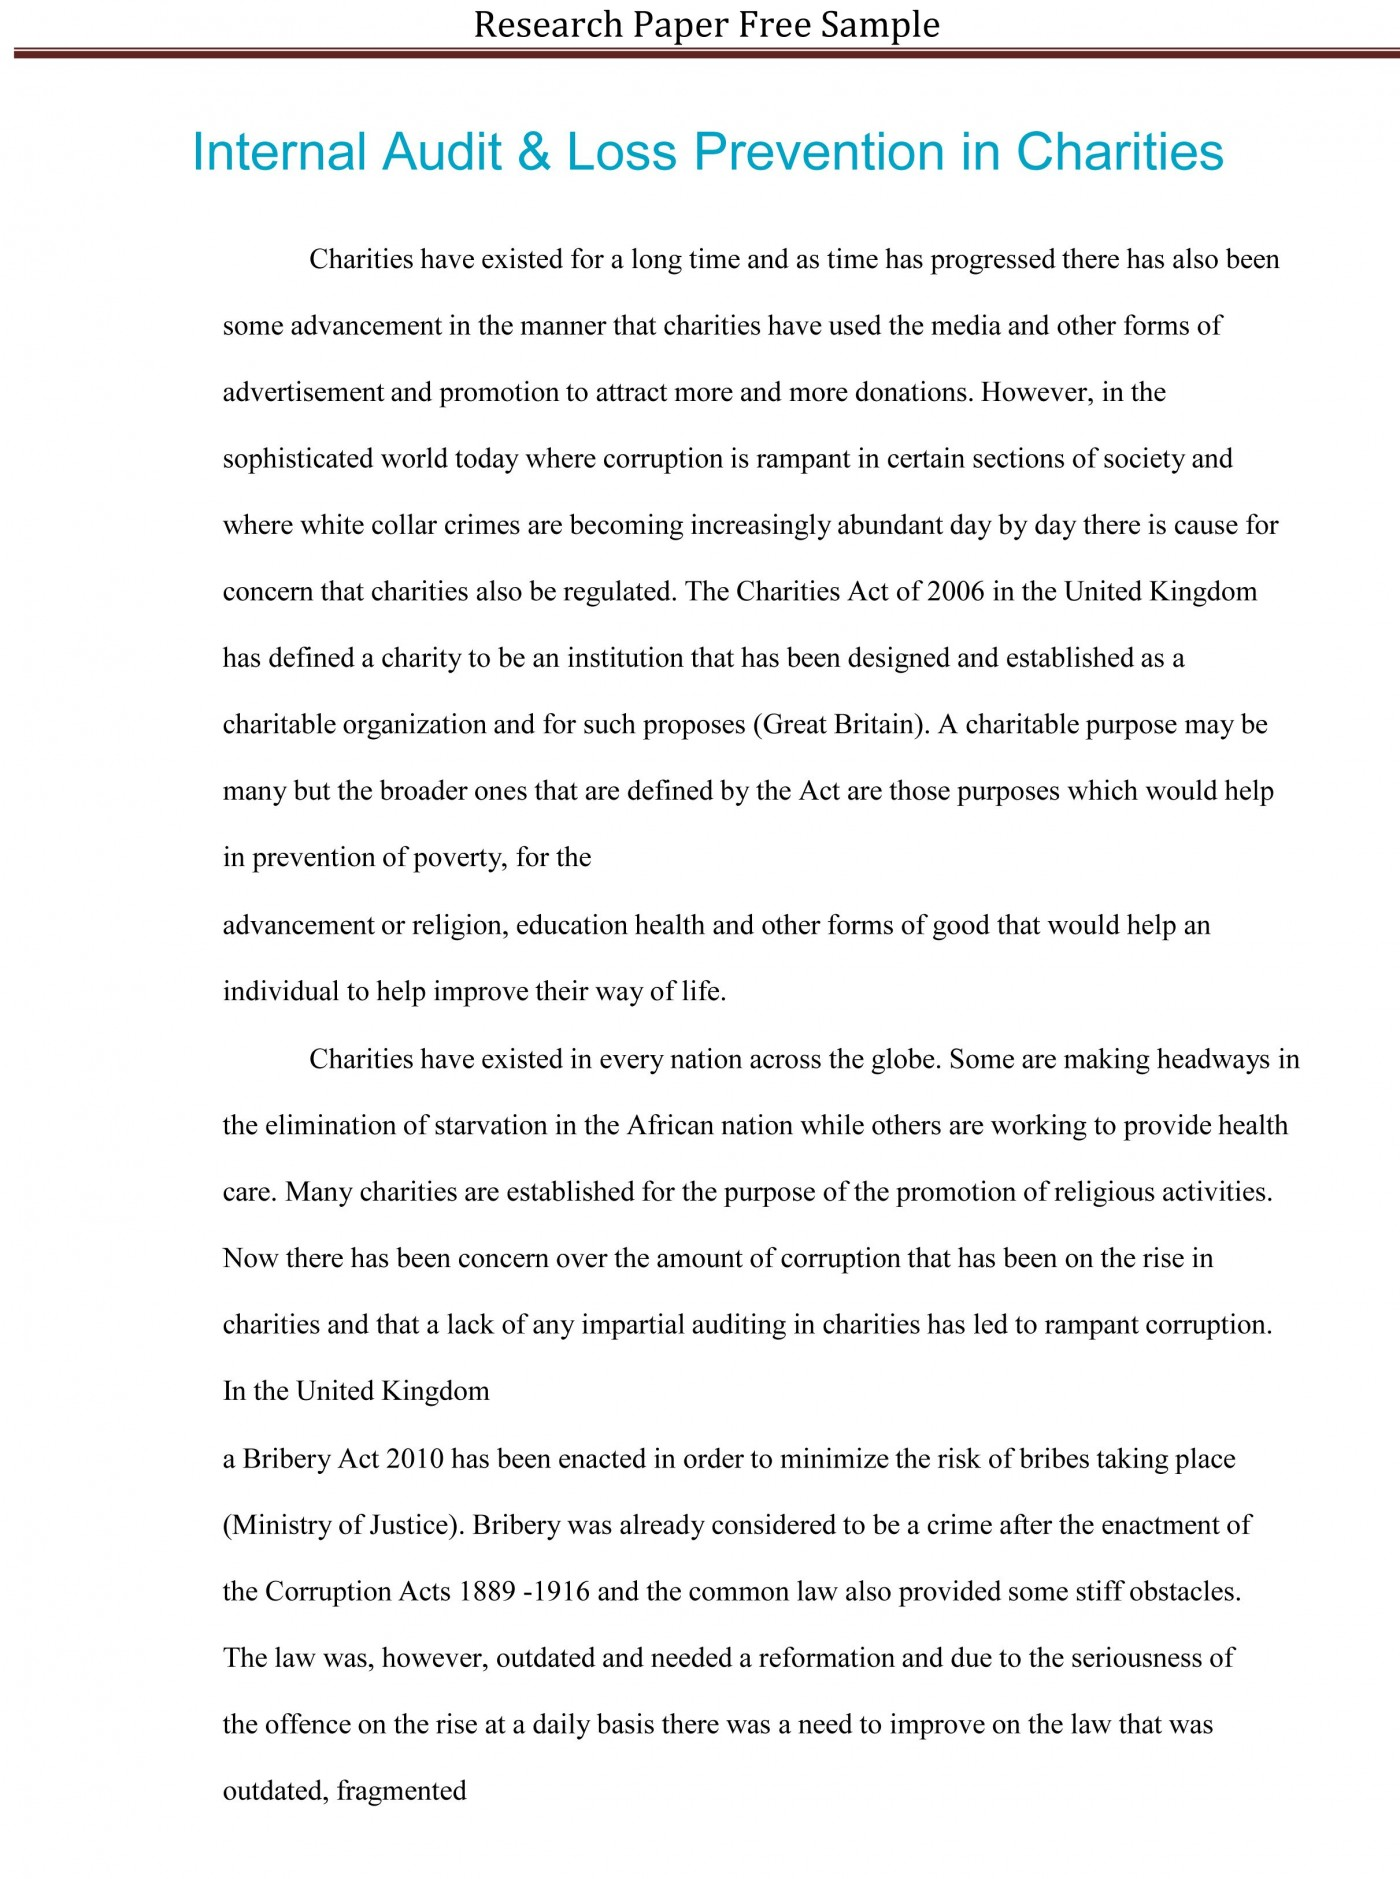 019 Research Paper Education Topic Wondrous Suggestions Ideas 1400